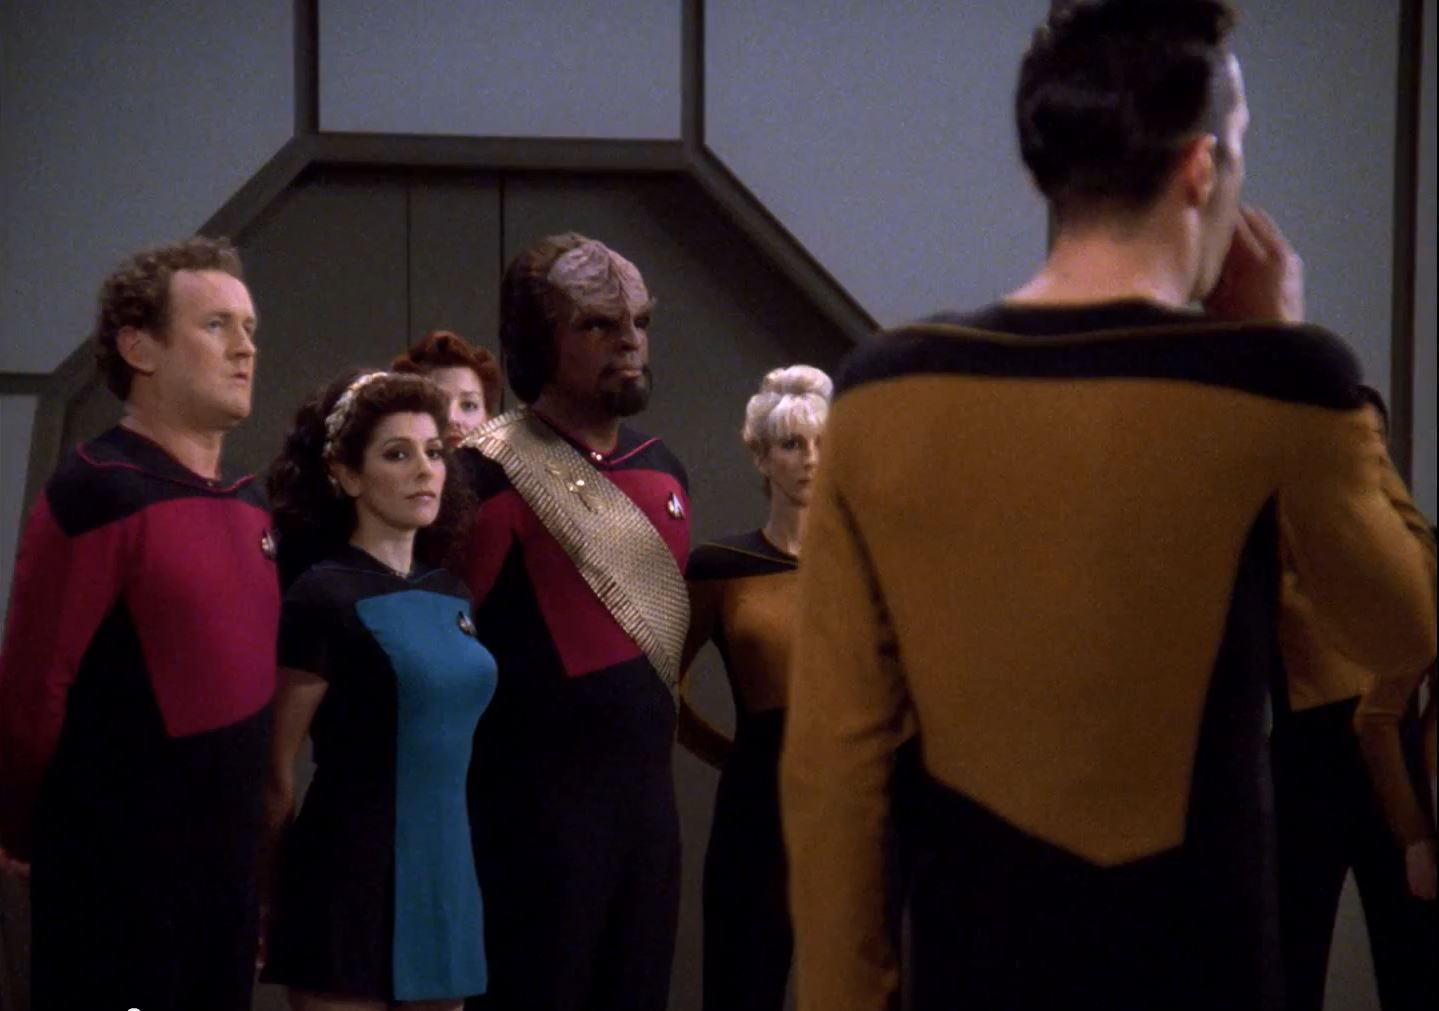 Star Trek TNG Season 7 Blu-Ray Trailer - Marina Sirtis in skirt skant uniform All Good Things